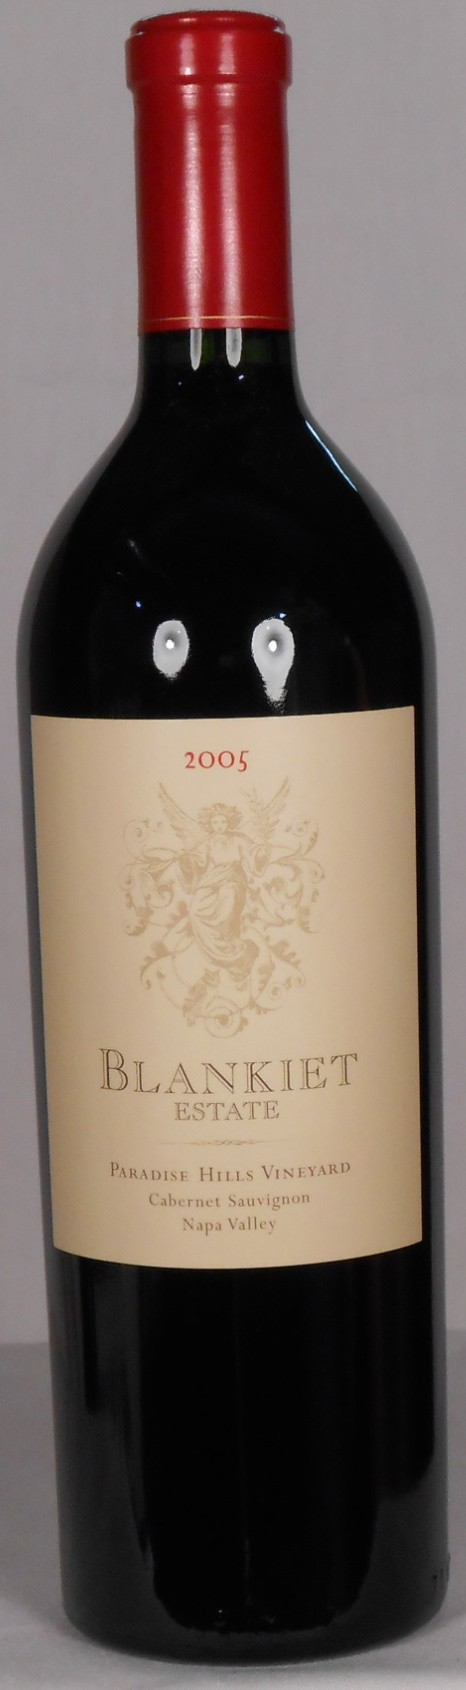 Blankiet Estate Cabernet Sauvignon Paradise Hills Vineyard Napa Valley 2005